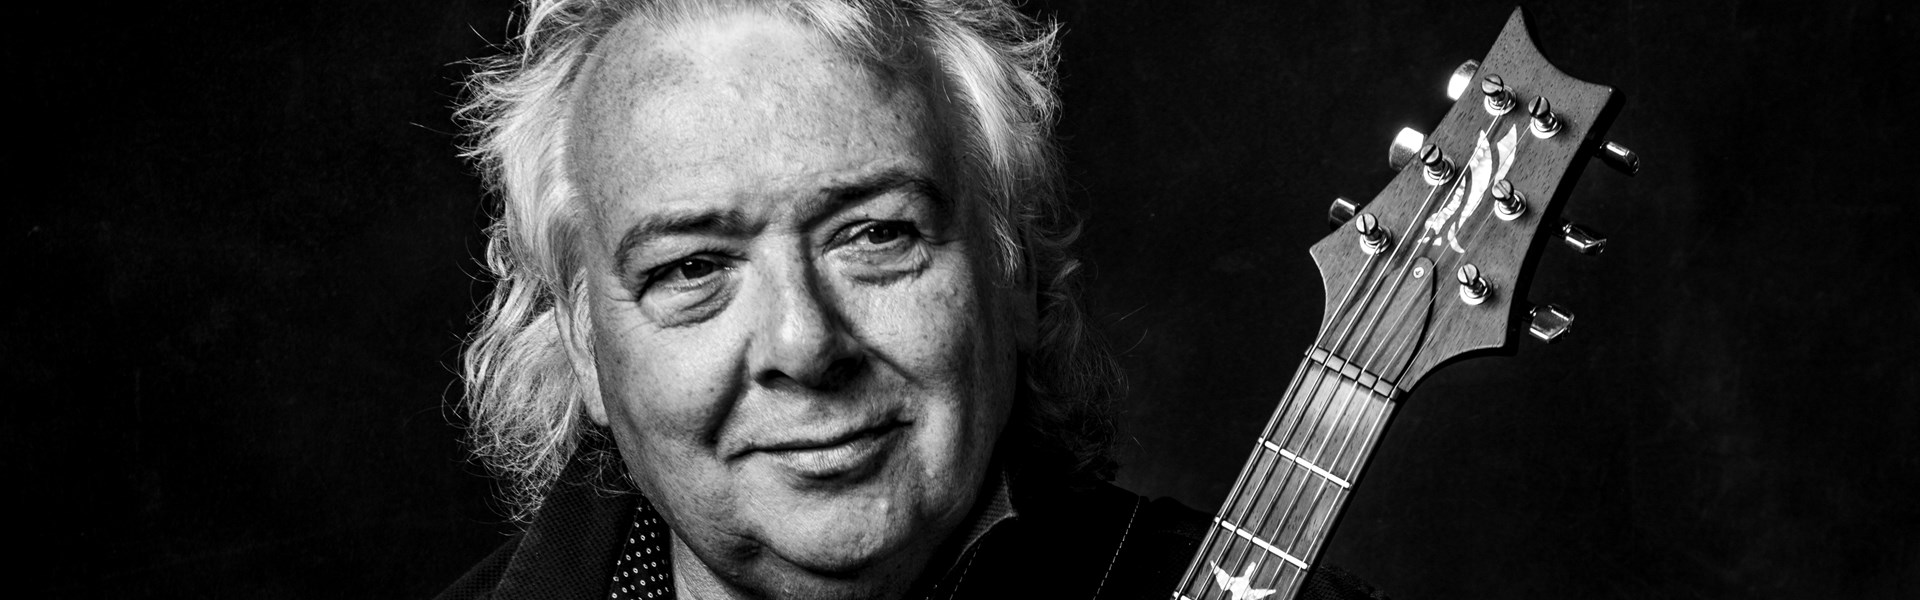 Here I Go Again - with Whitesnake's Bernie Marsden